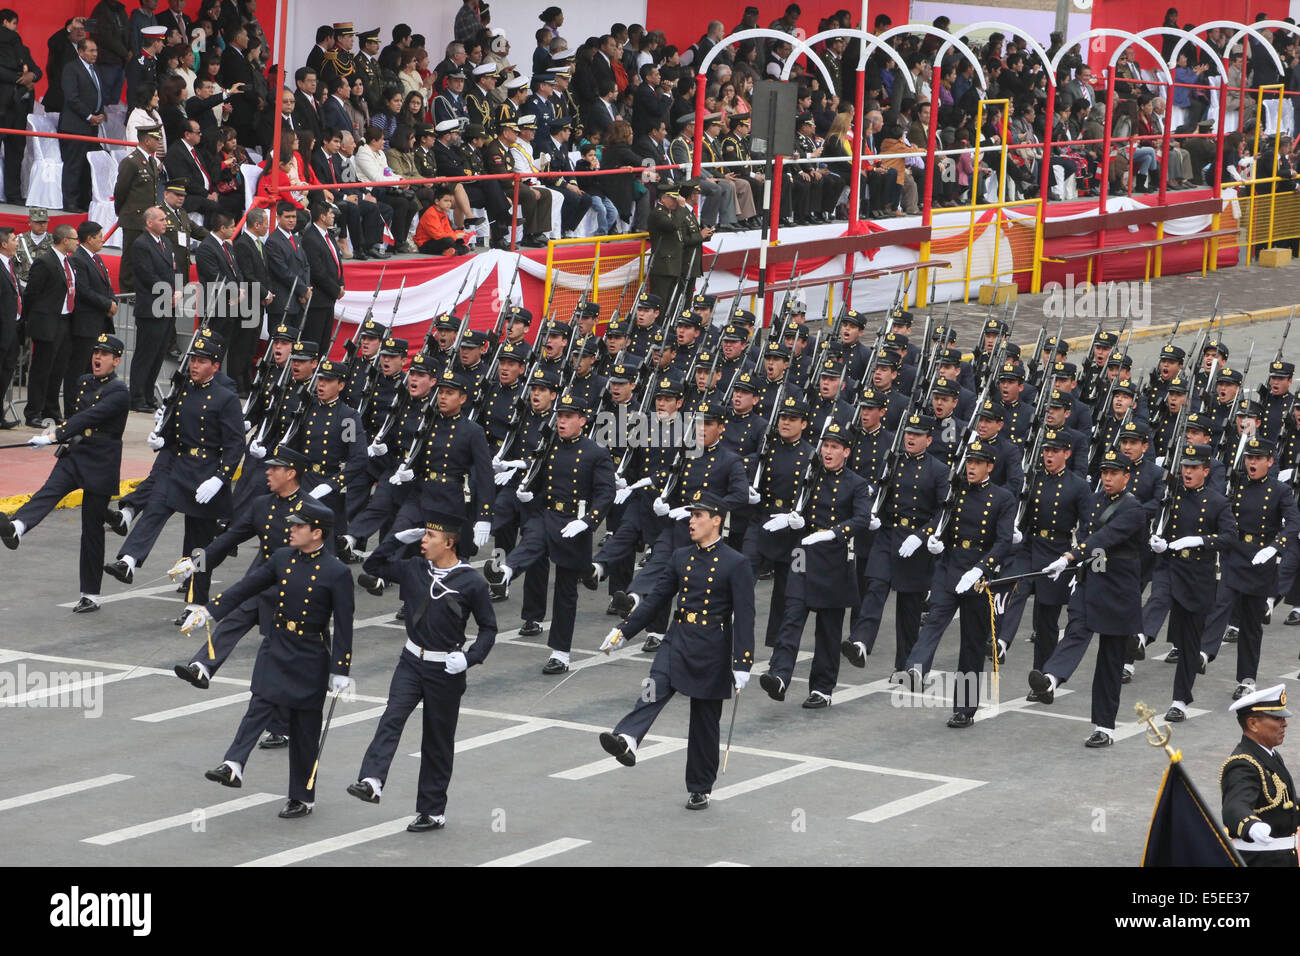 Lima Peru 29th July 2014 Soldiers Of Peru S Armed Forces Stock Photo Alamy